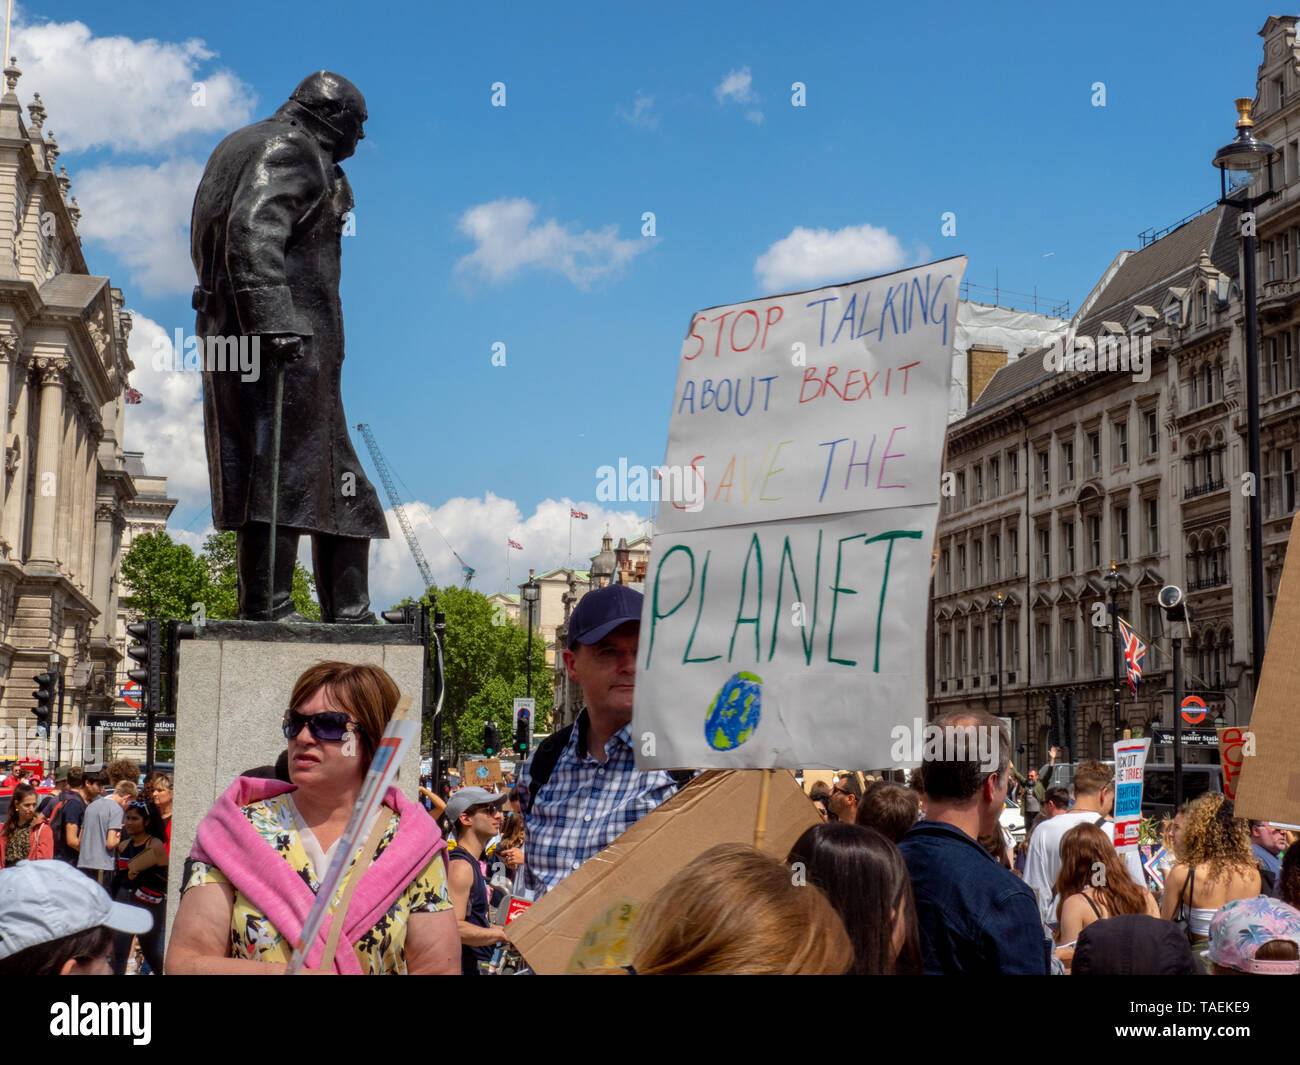 Student and youth climate activists with placards demonstrate in central London on May 24, 2019 as they demand action to tackle climate change. - Stock Image